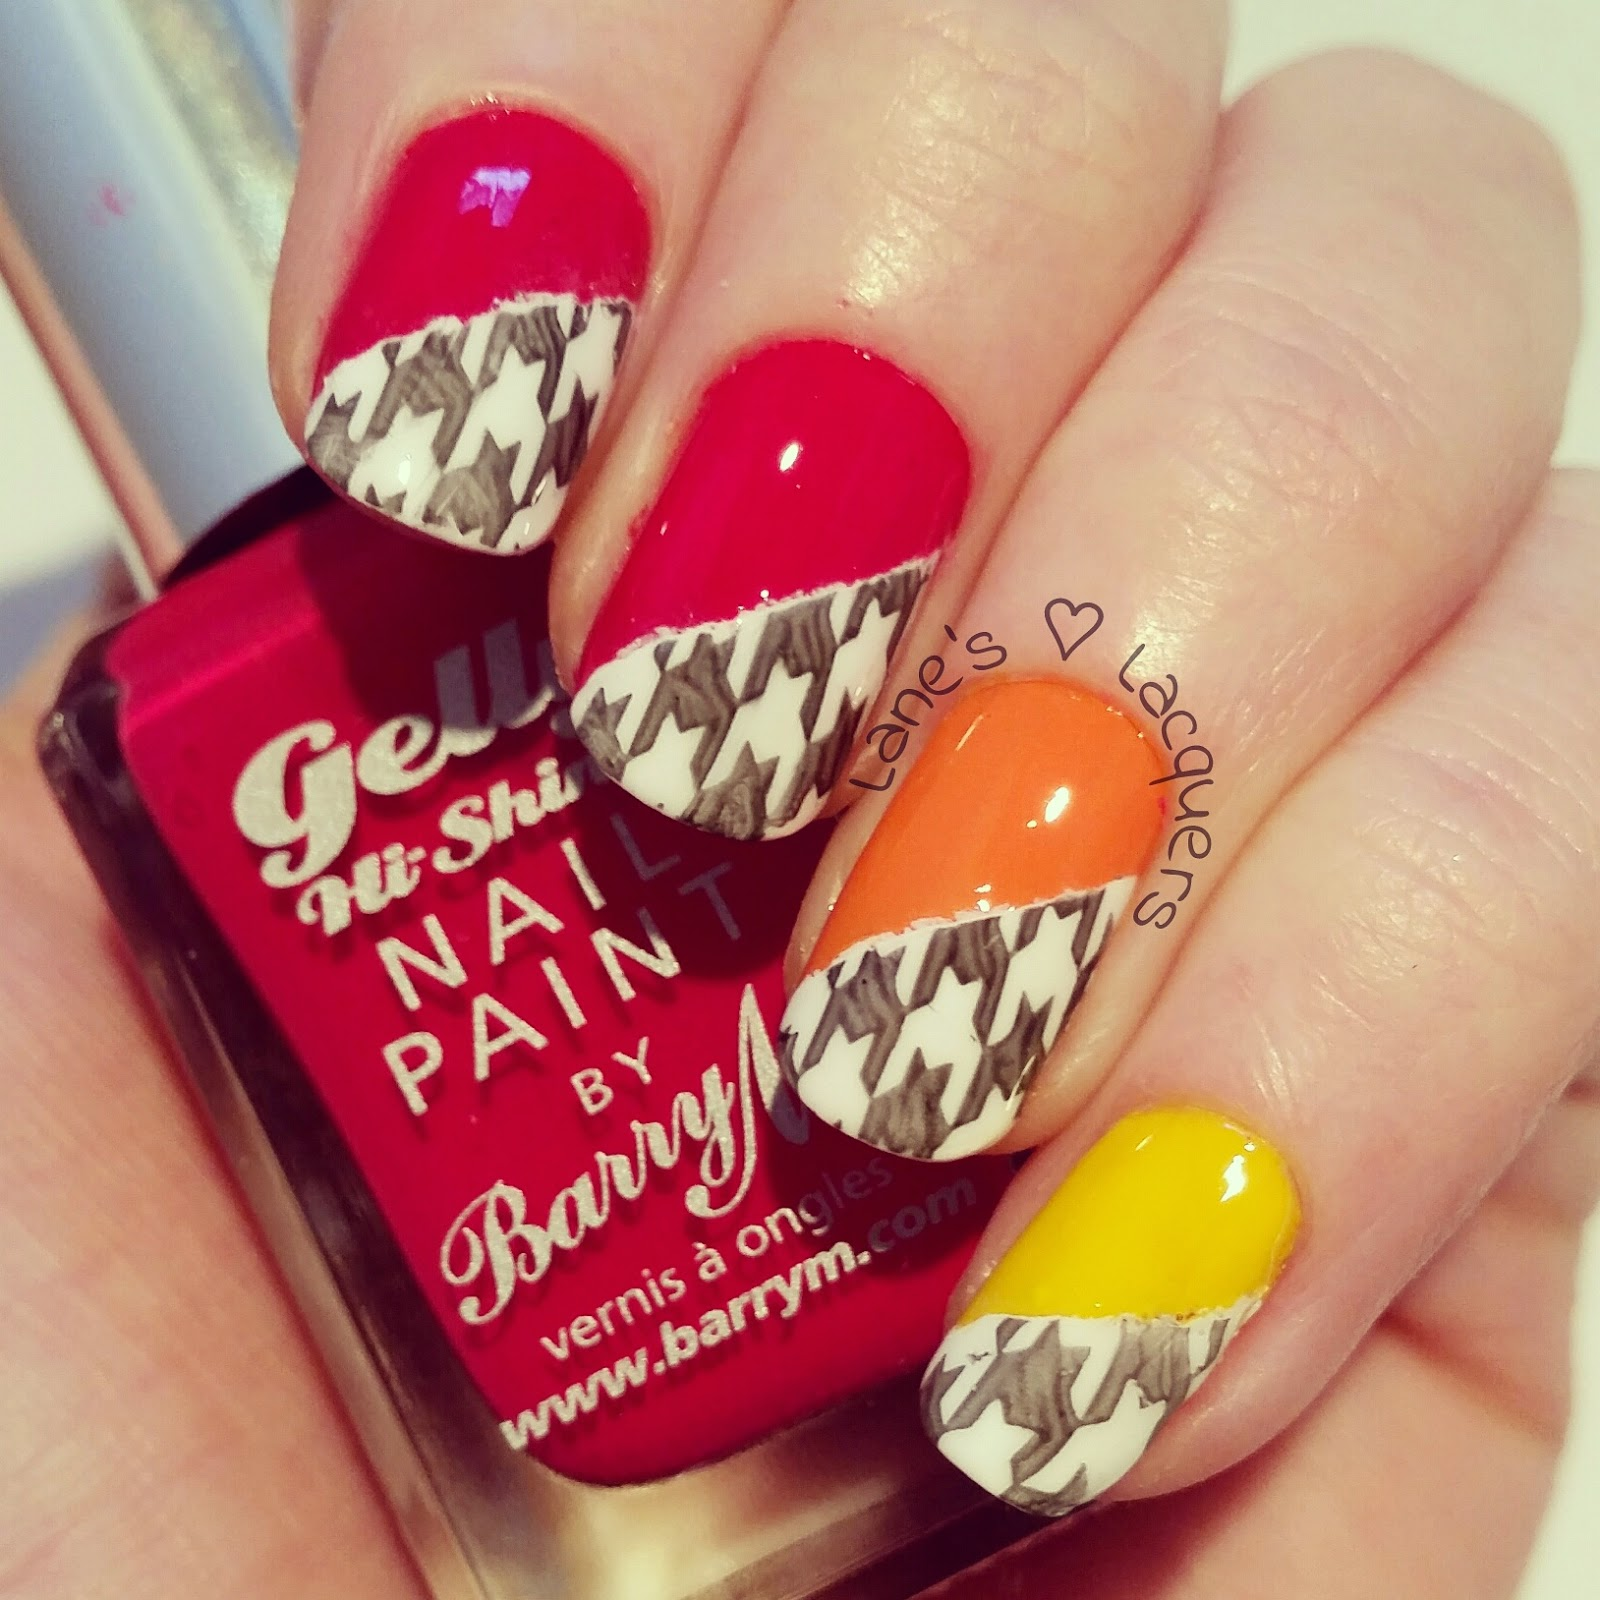 barry-m-skittle-houndstooth-nail-art (2)